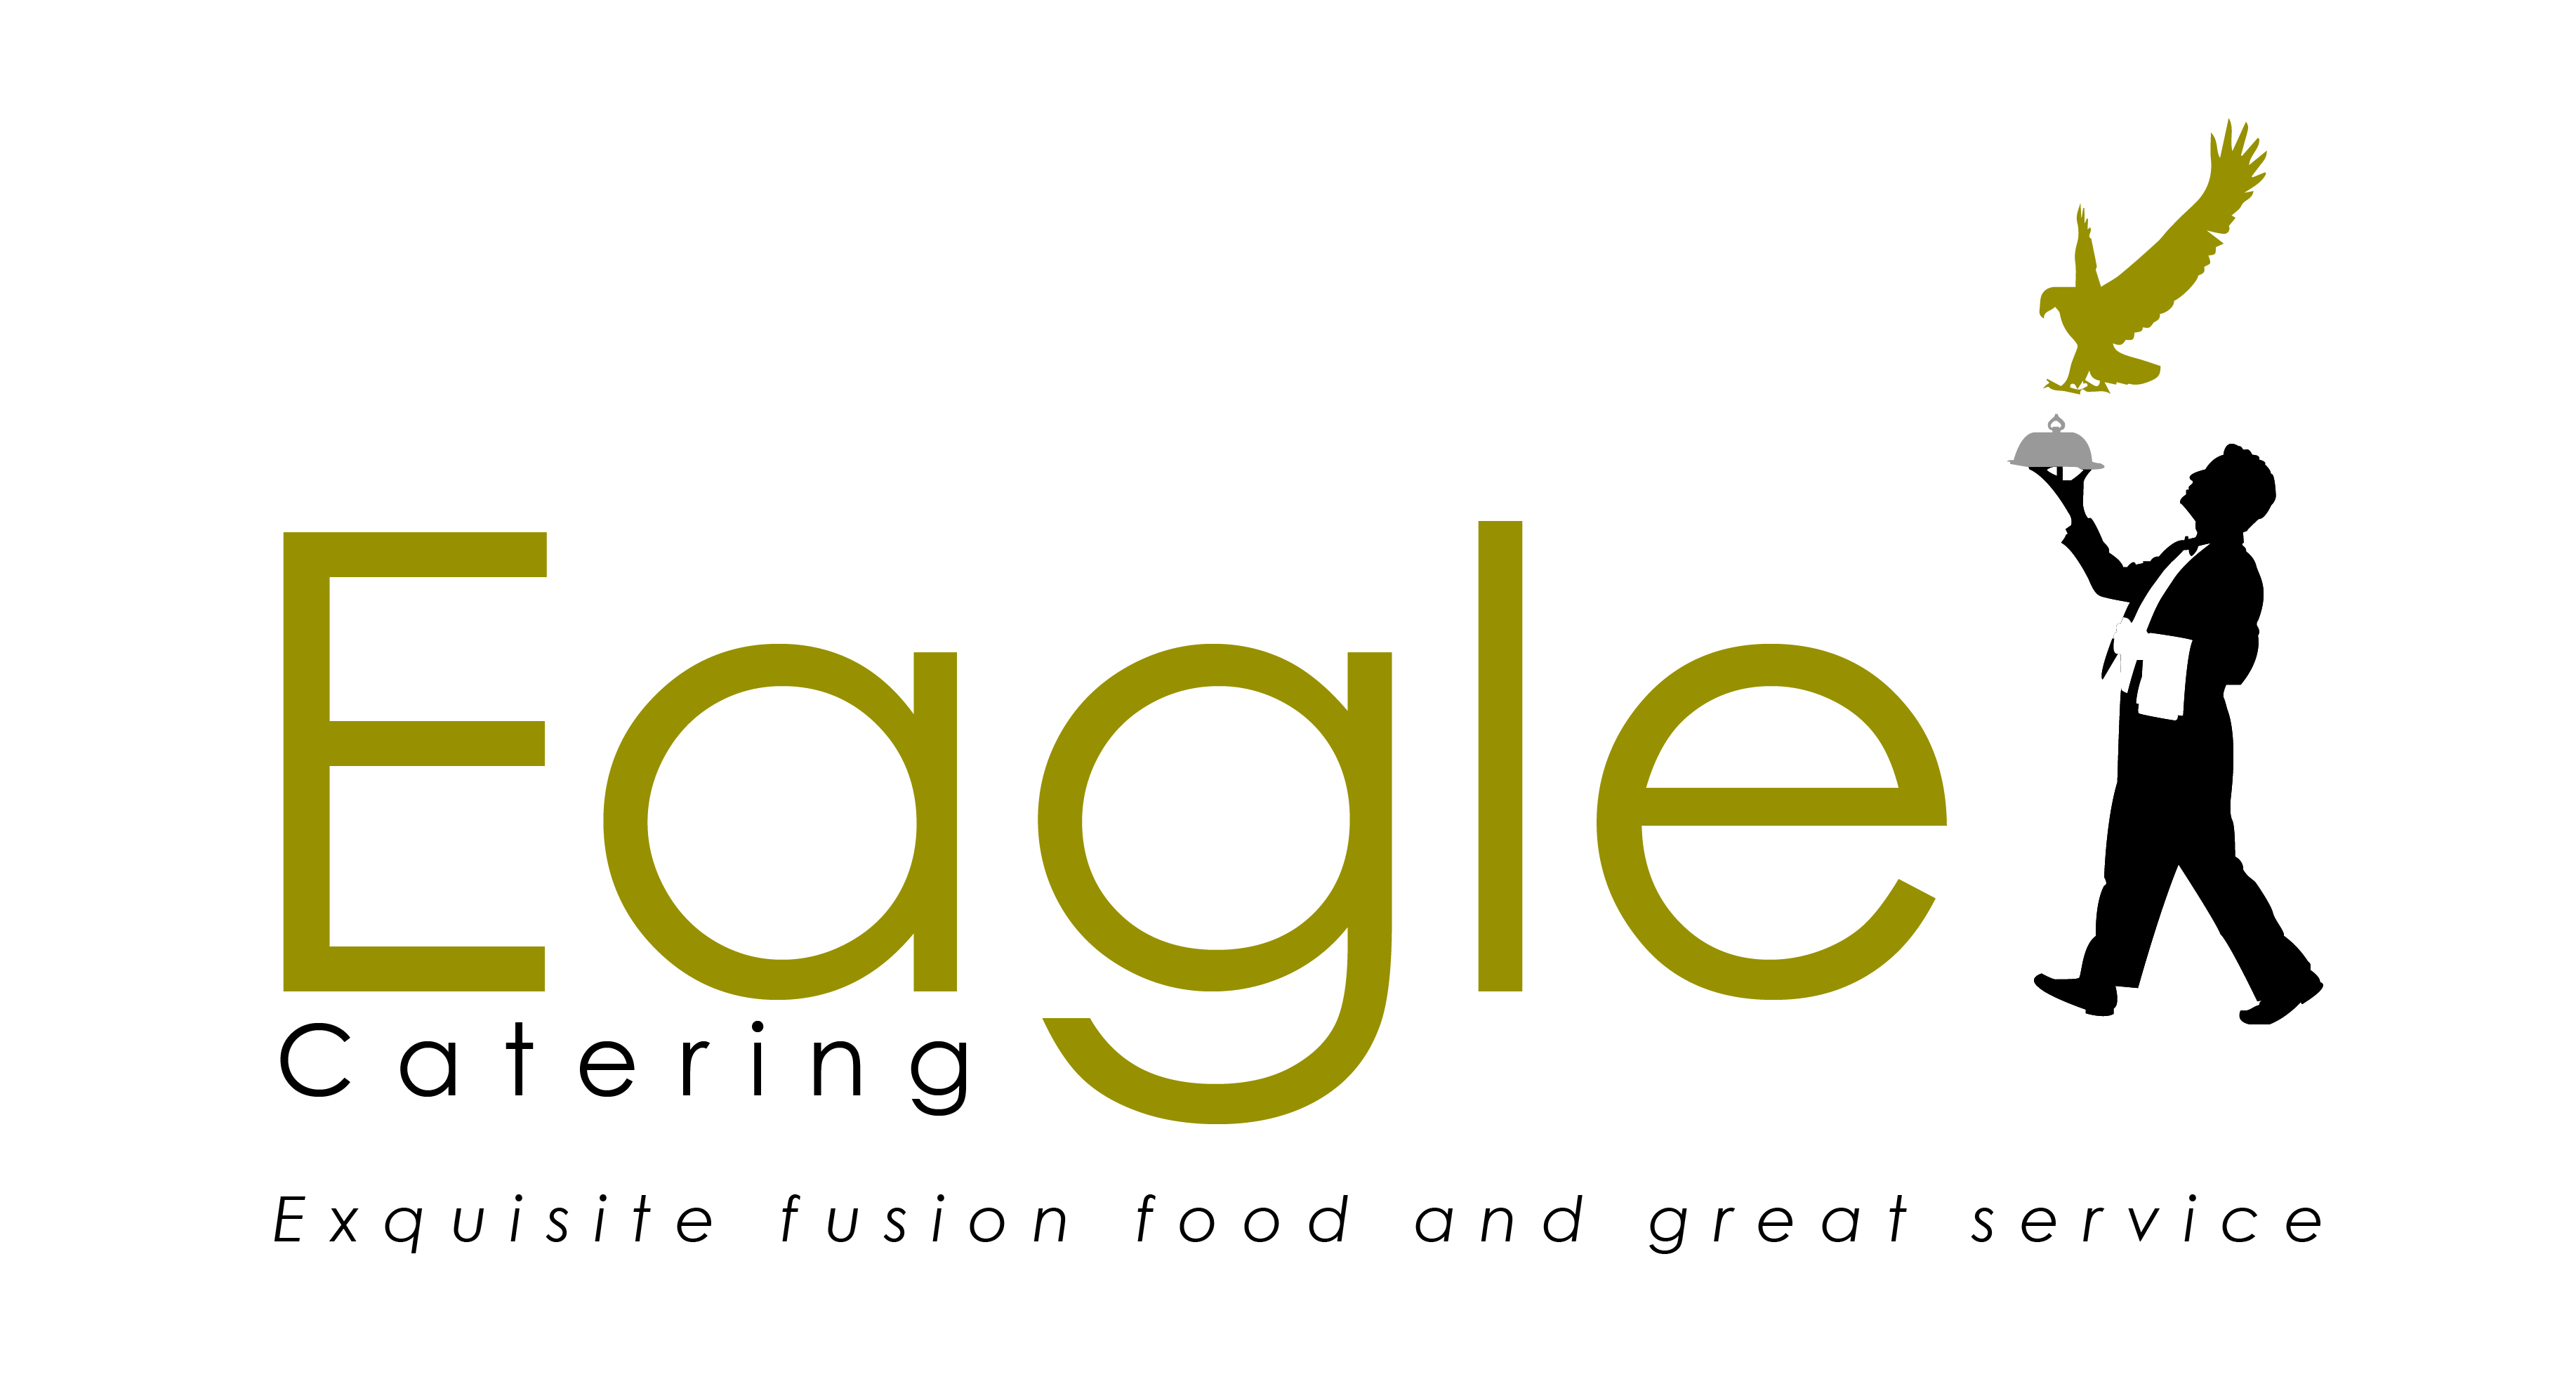 Eagle Catering